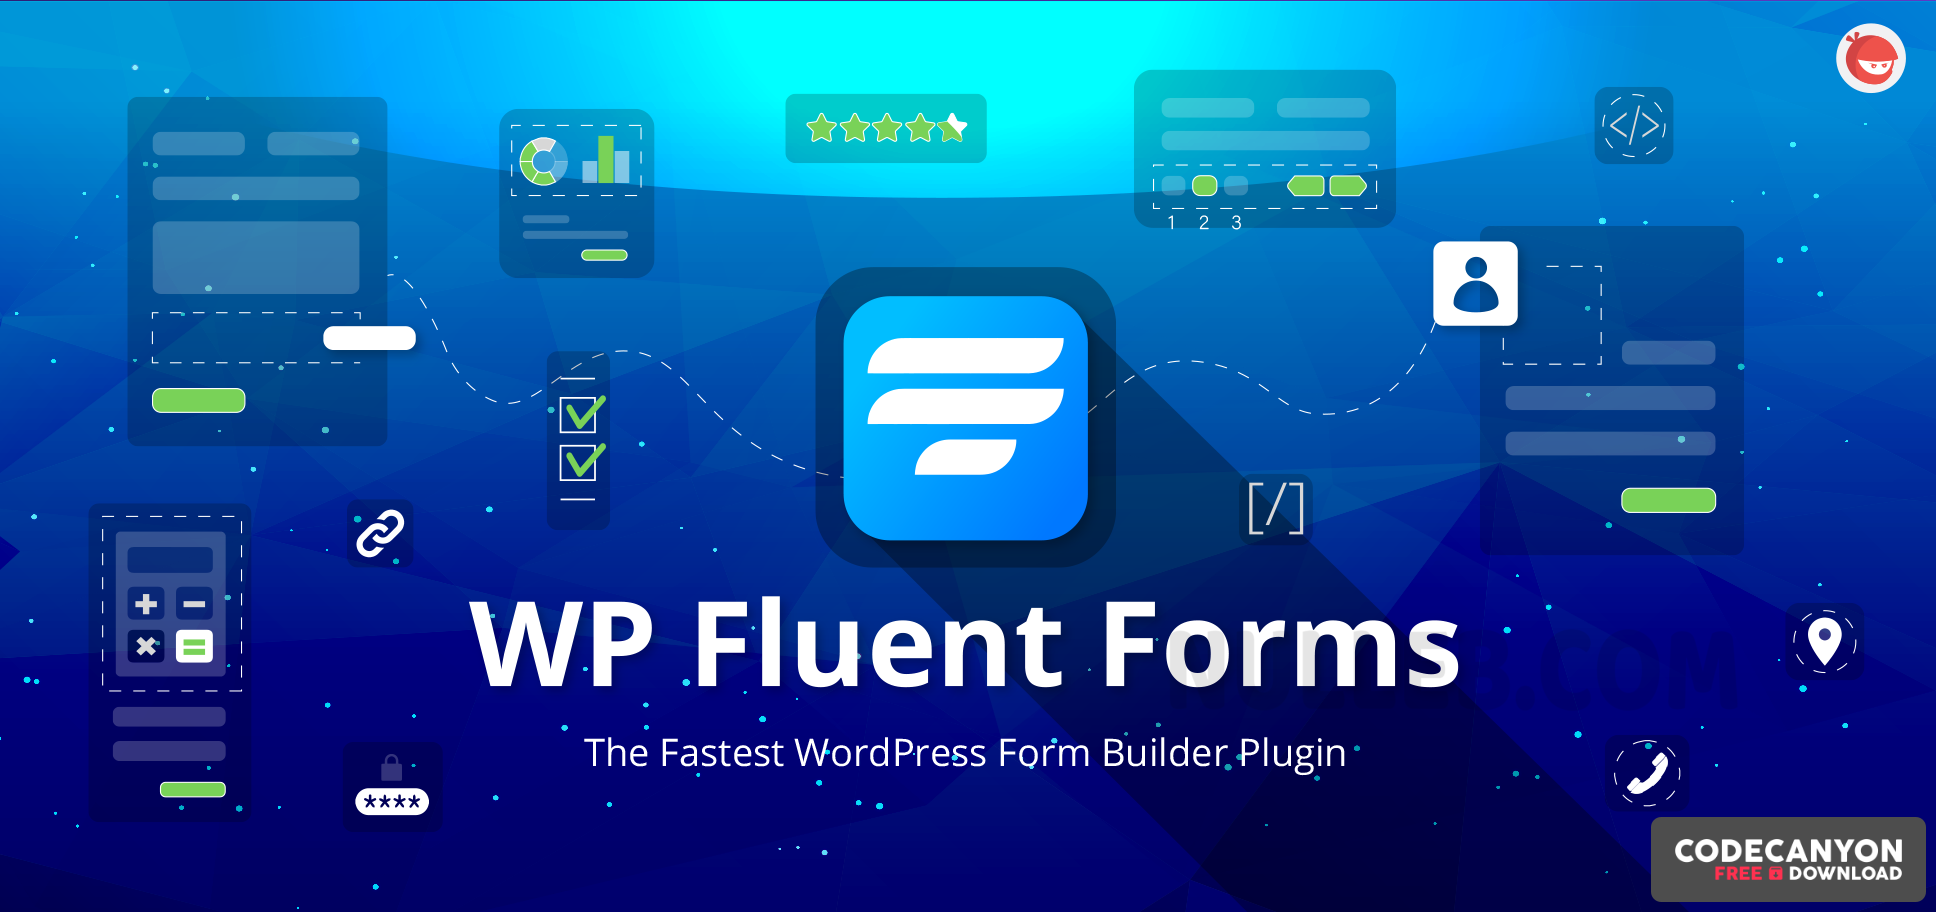 Download WP Fluent Forms Pro Add-On v3.6.62 (Nulled) Free / Nulled